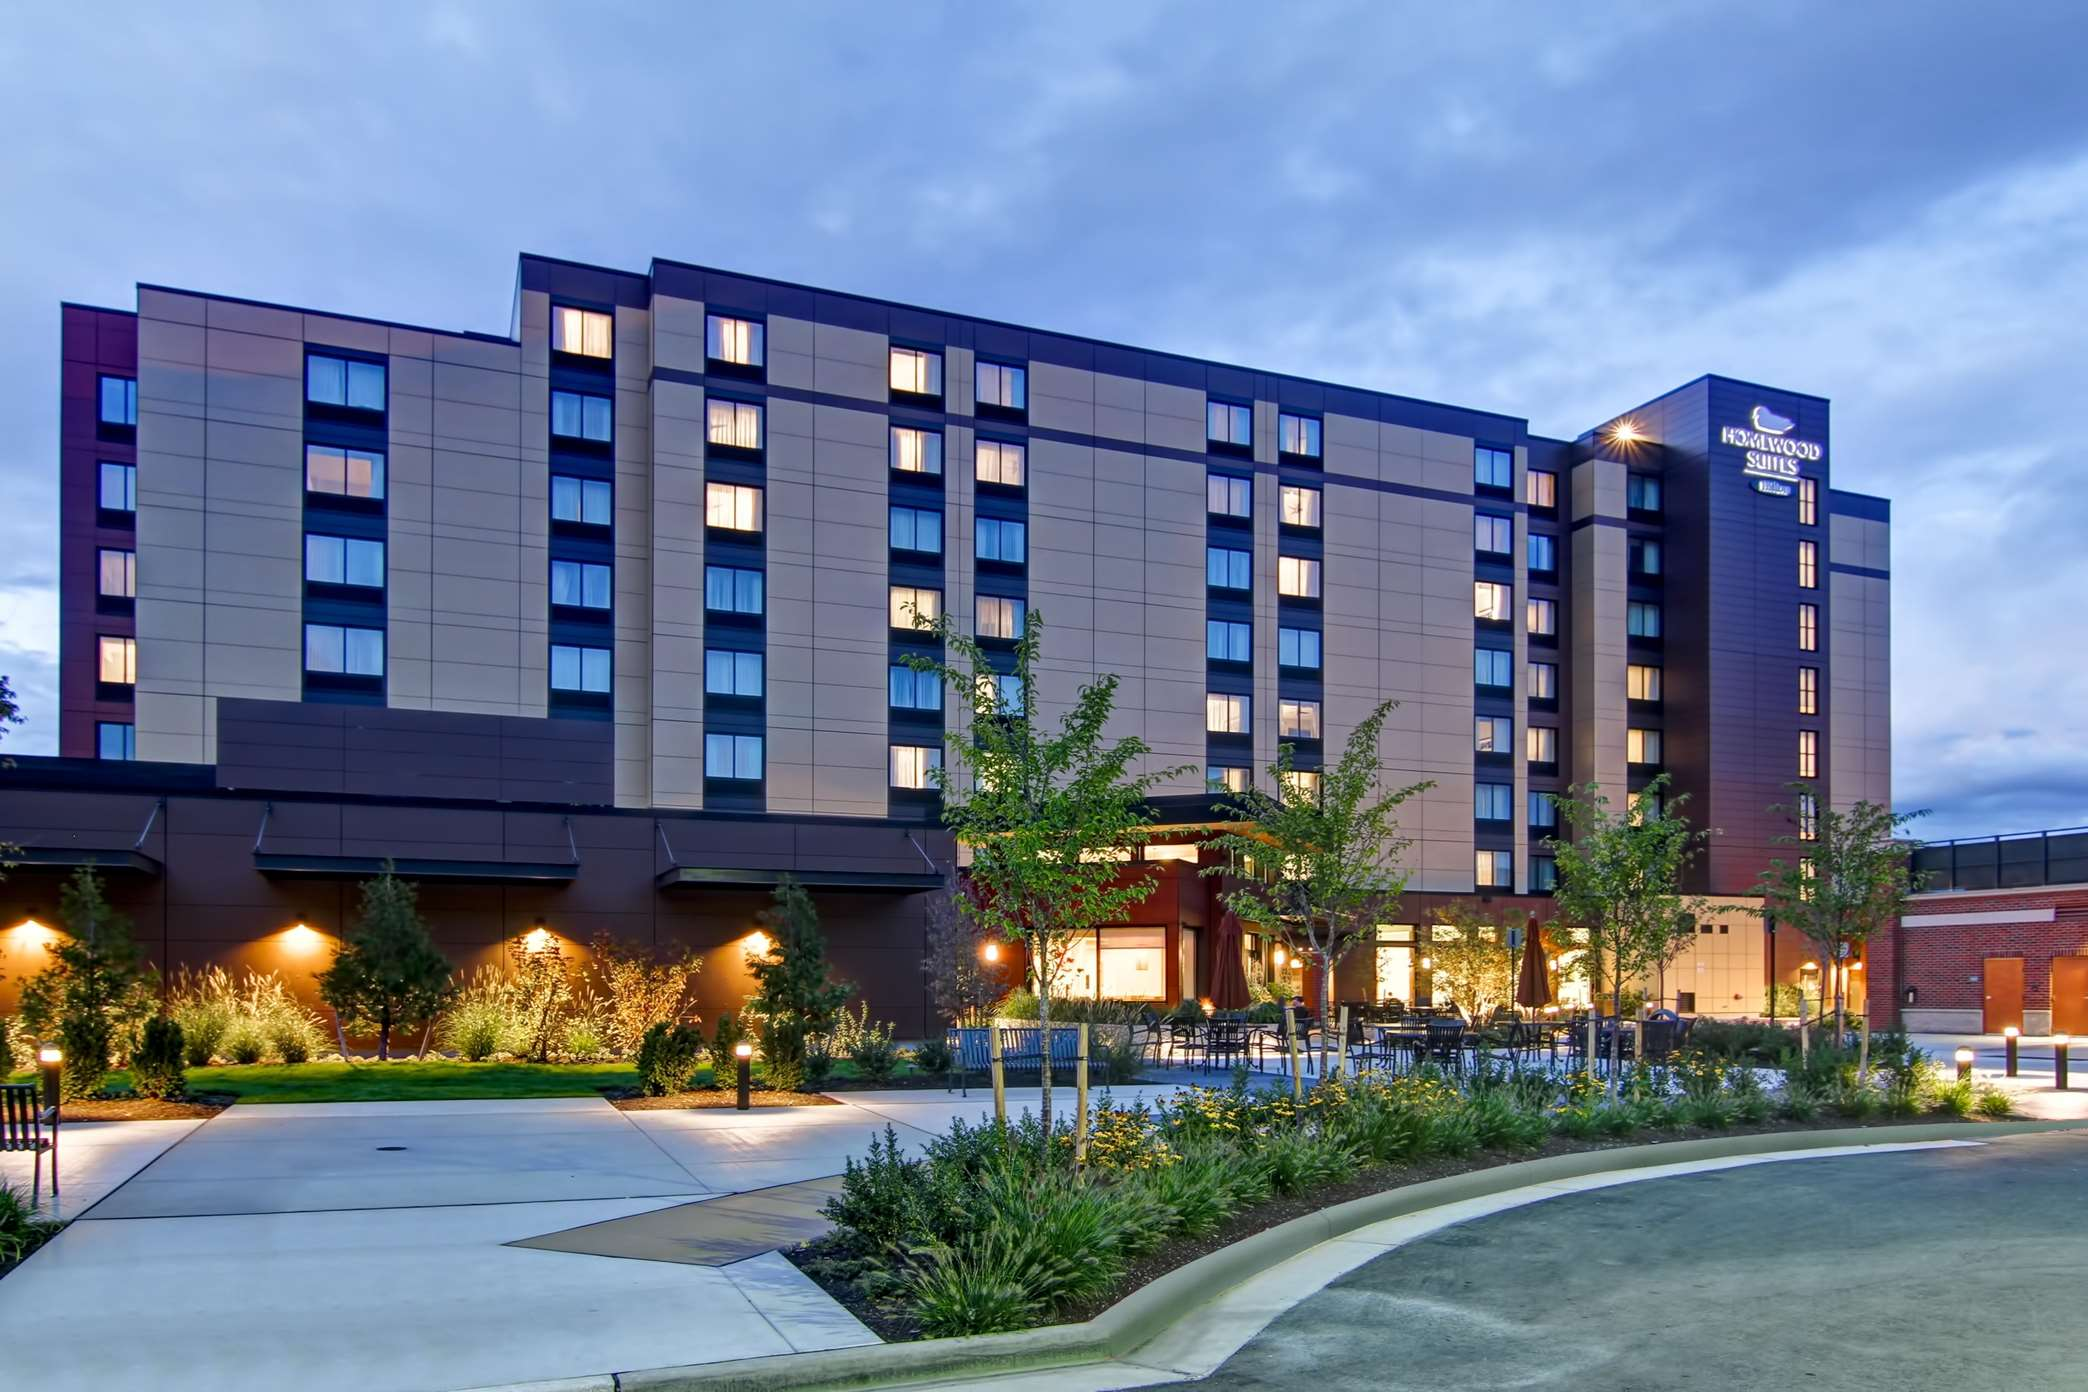 Homewood Suites by Hilton Seattle-Issaquah image 1